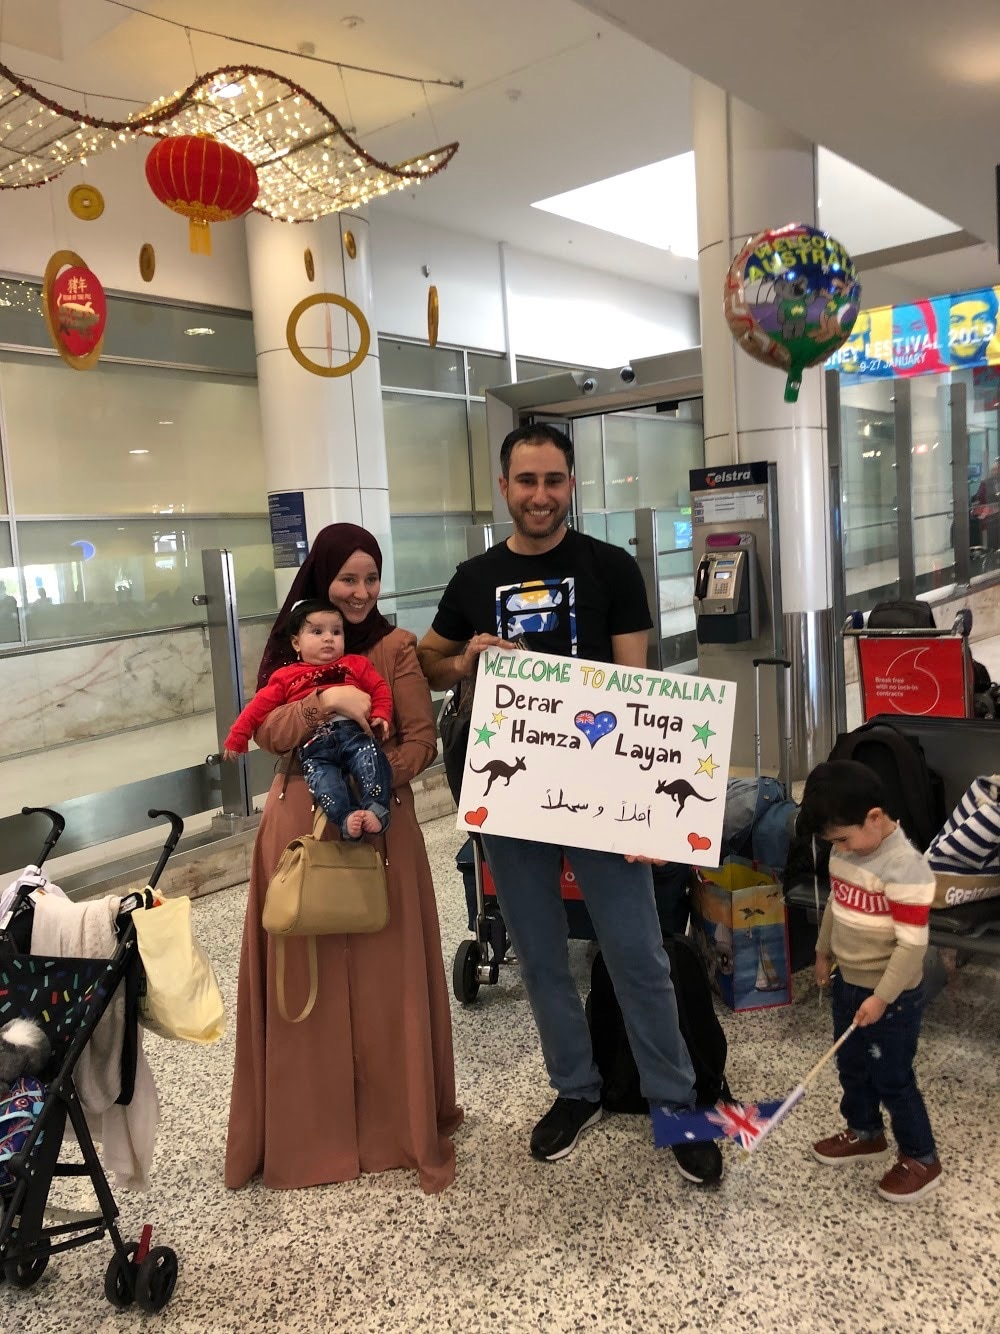 Derar and his family arrive at Sydney airport.